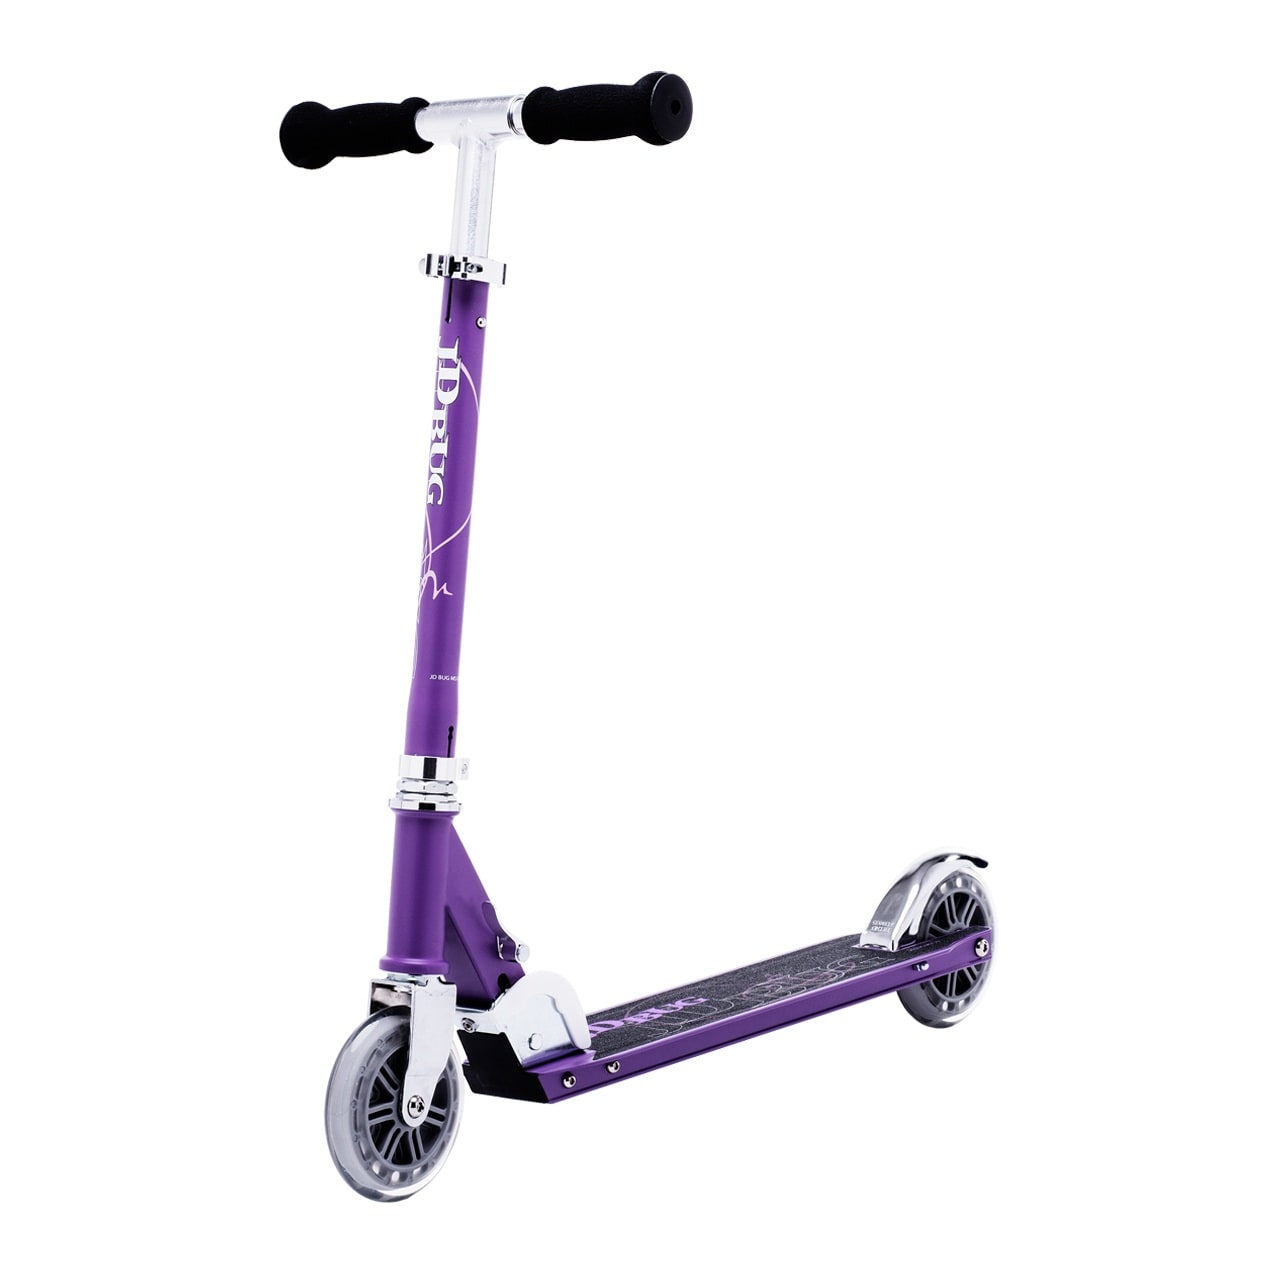 JD Bug Classic Street 120 Folding Scooter  Matt Purple